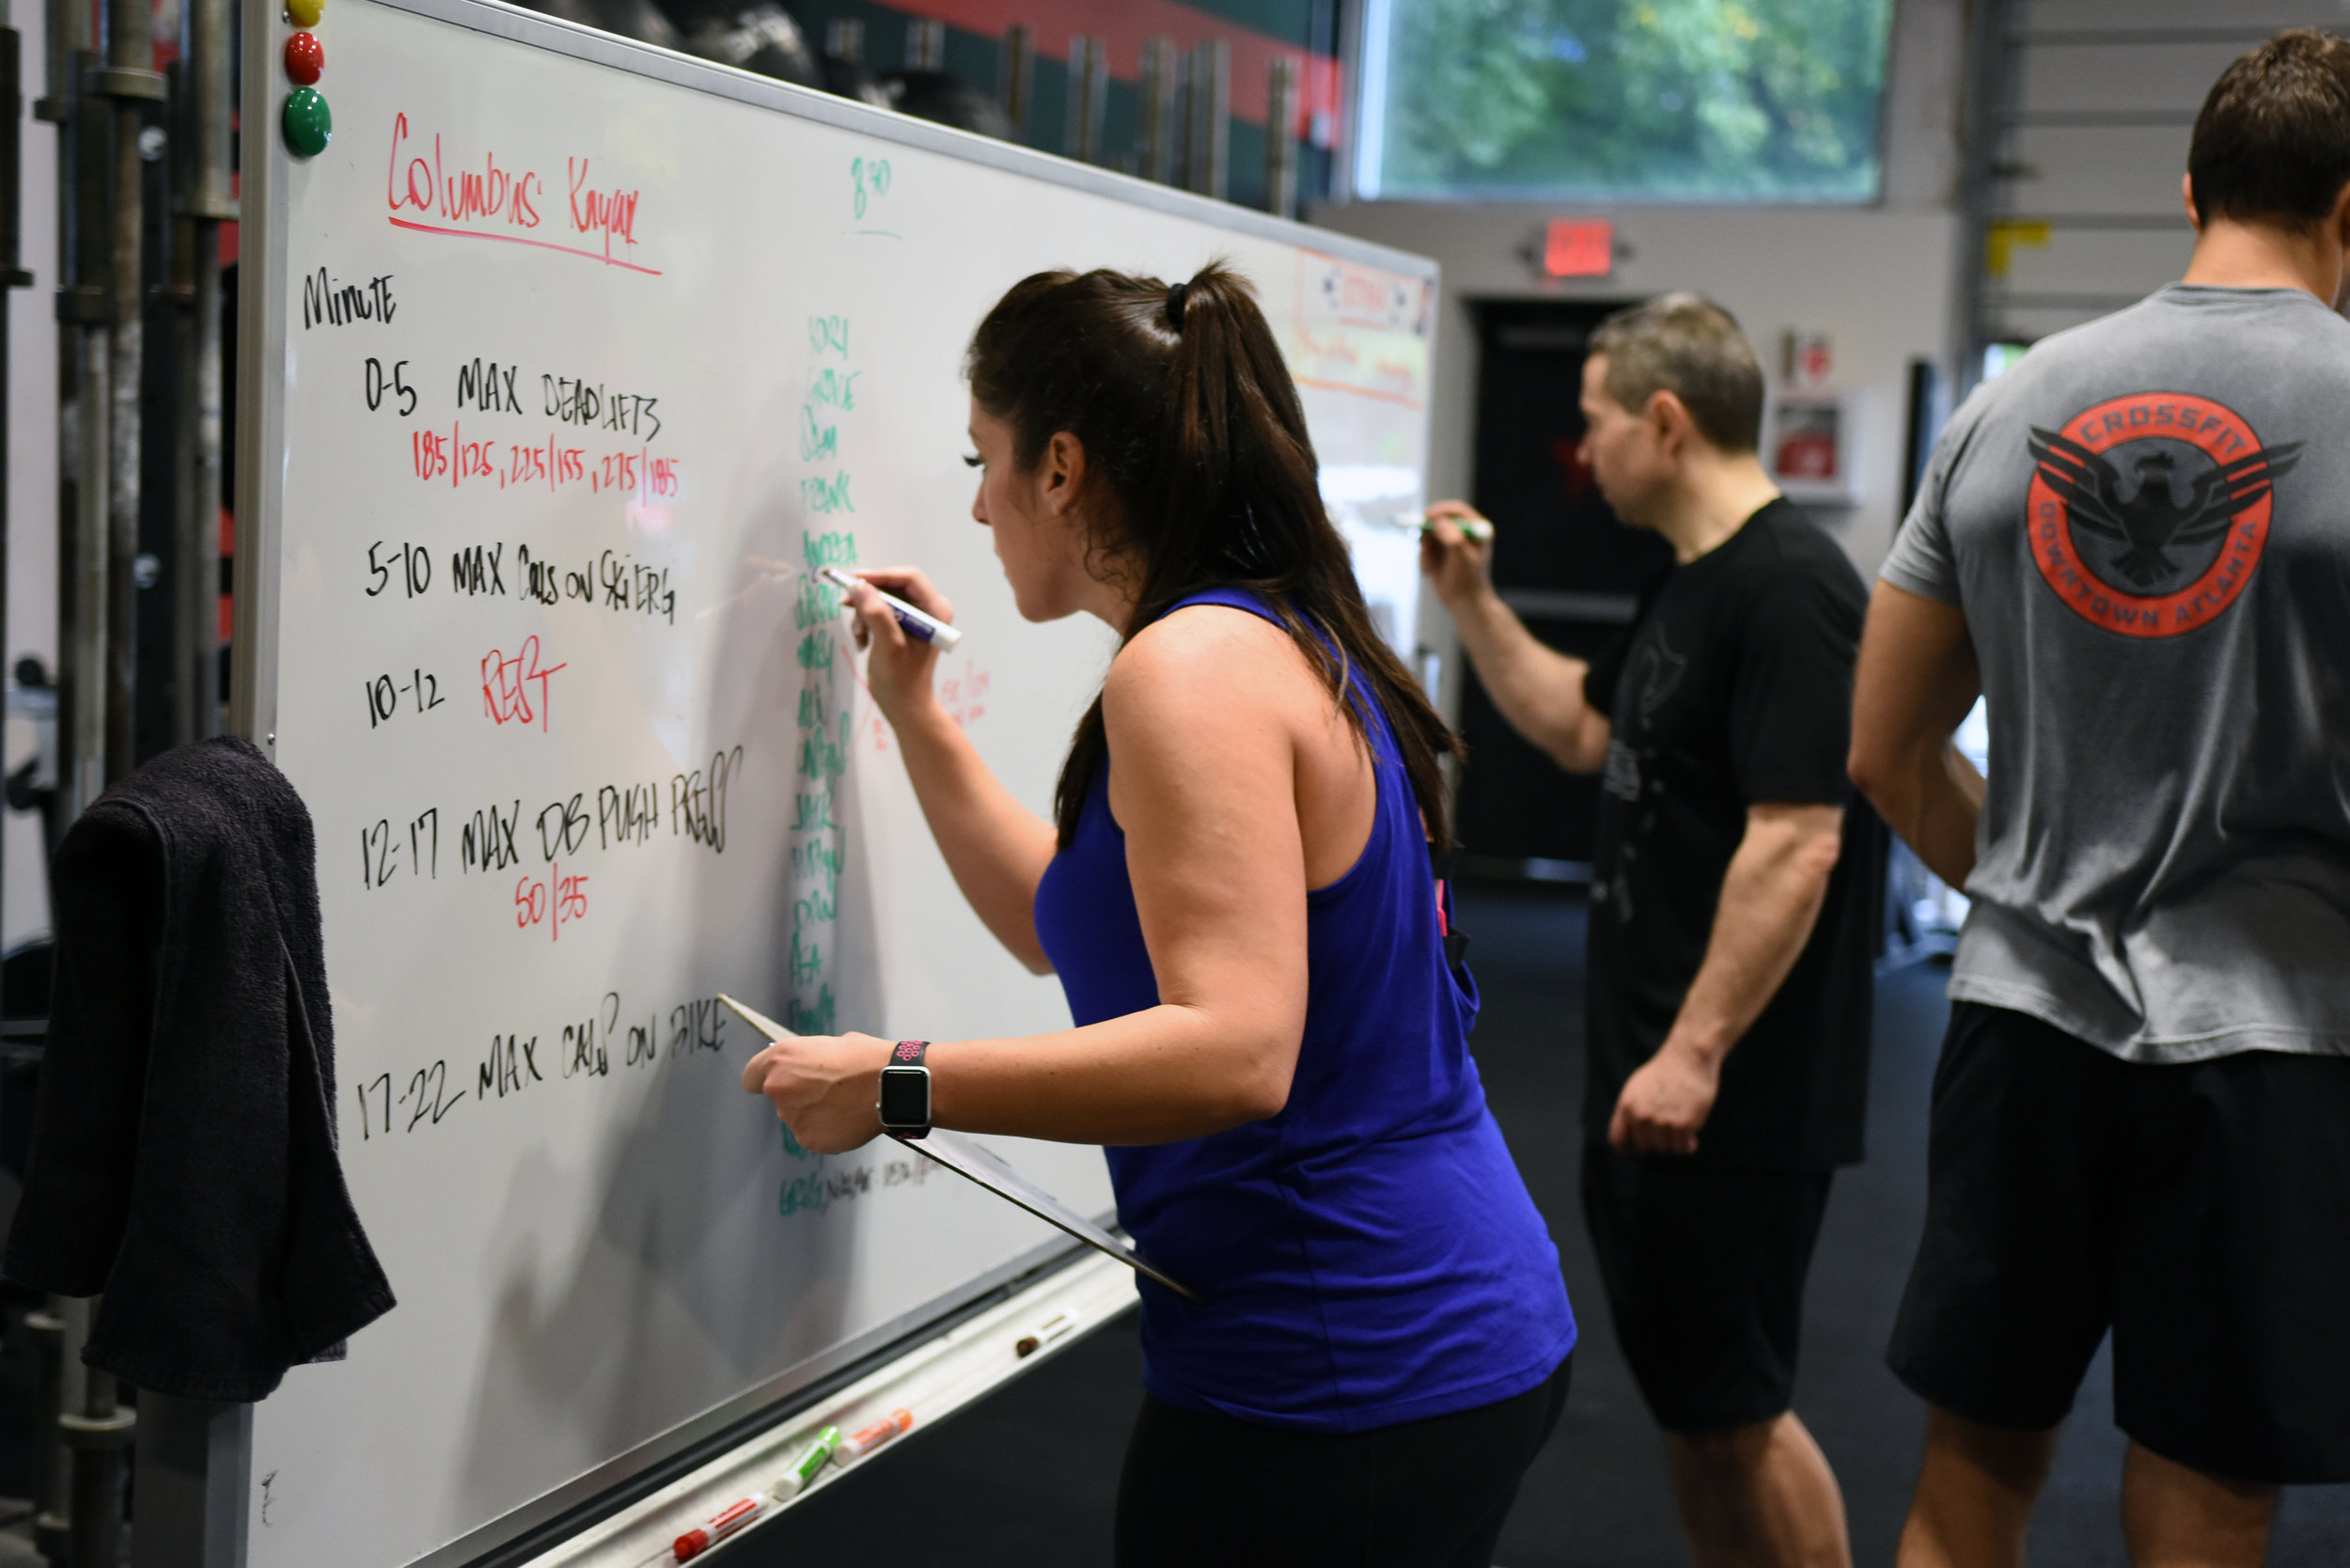 Do you keep a logbook? Keeping track of our workouts allows us to assess our current fitness level and decide on how we need to approach future workouts to keep improving on our weaknesses. If you've never kept a logbook before, now is the time to start!